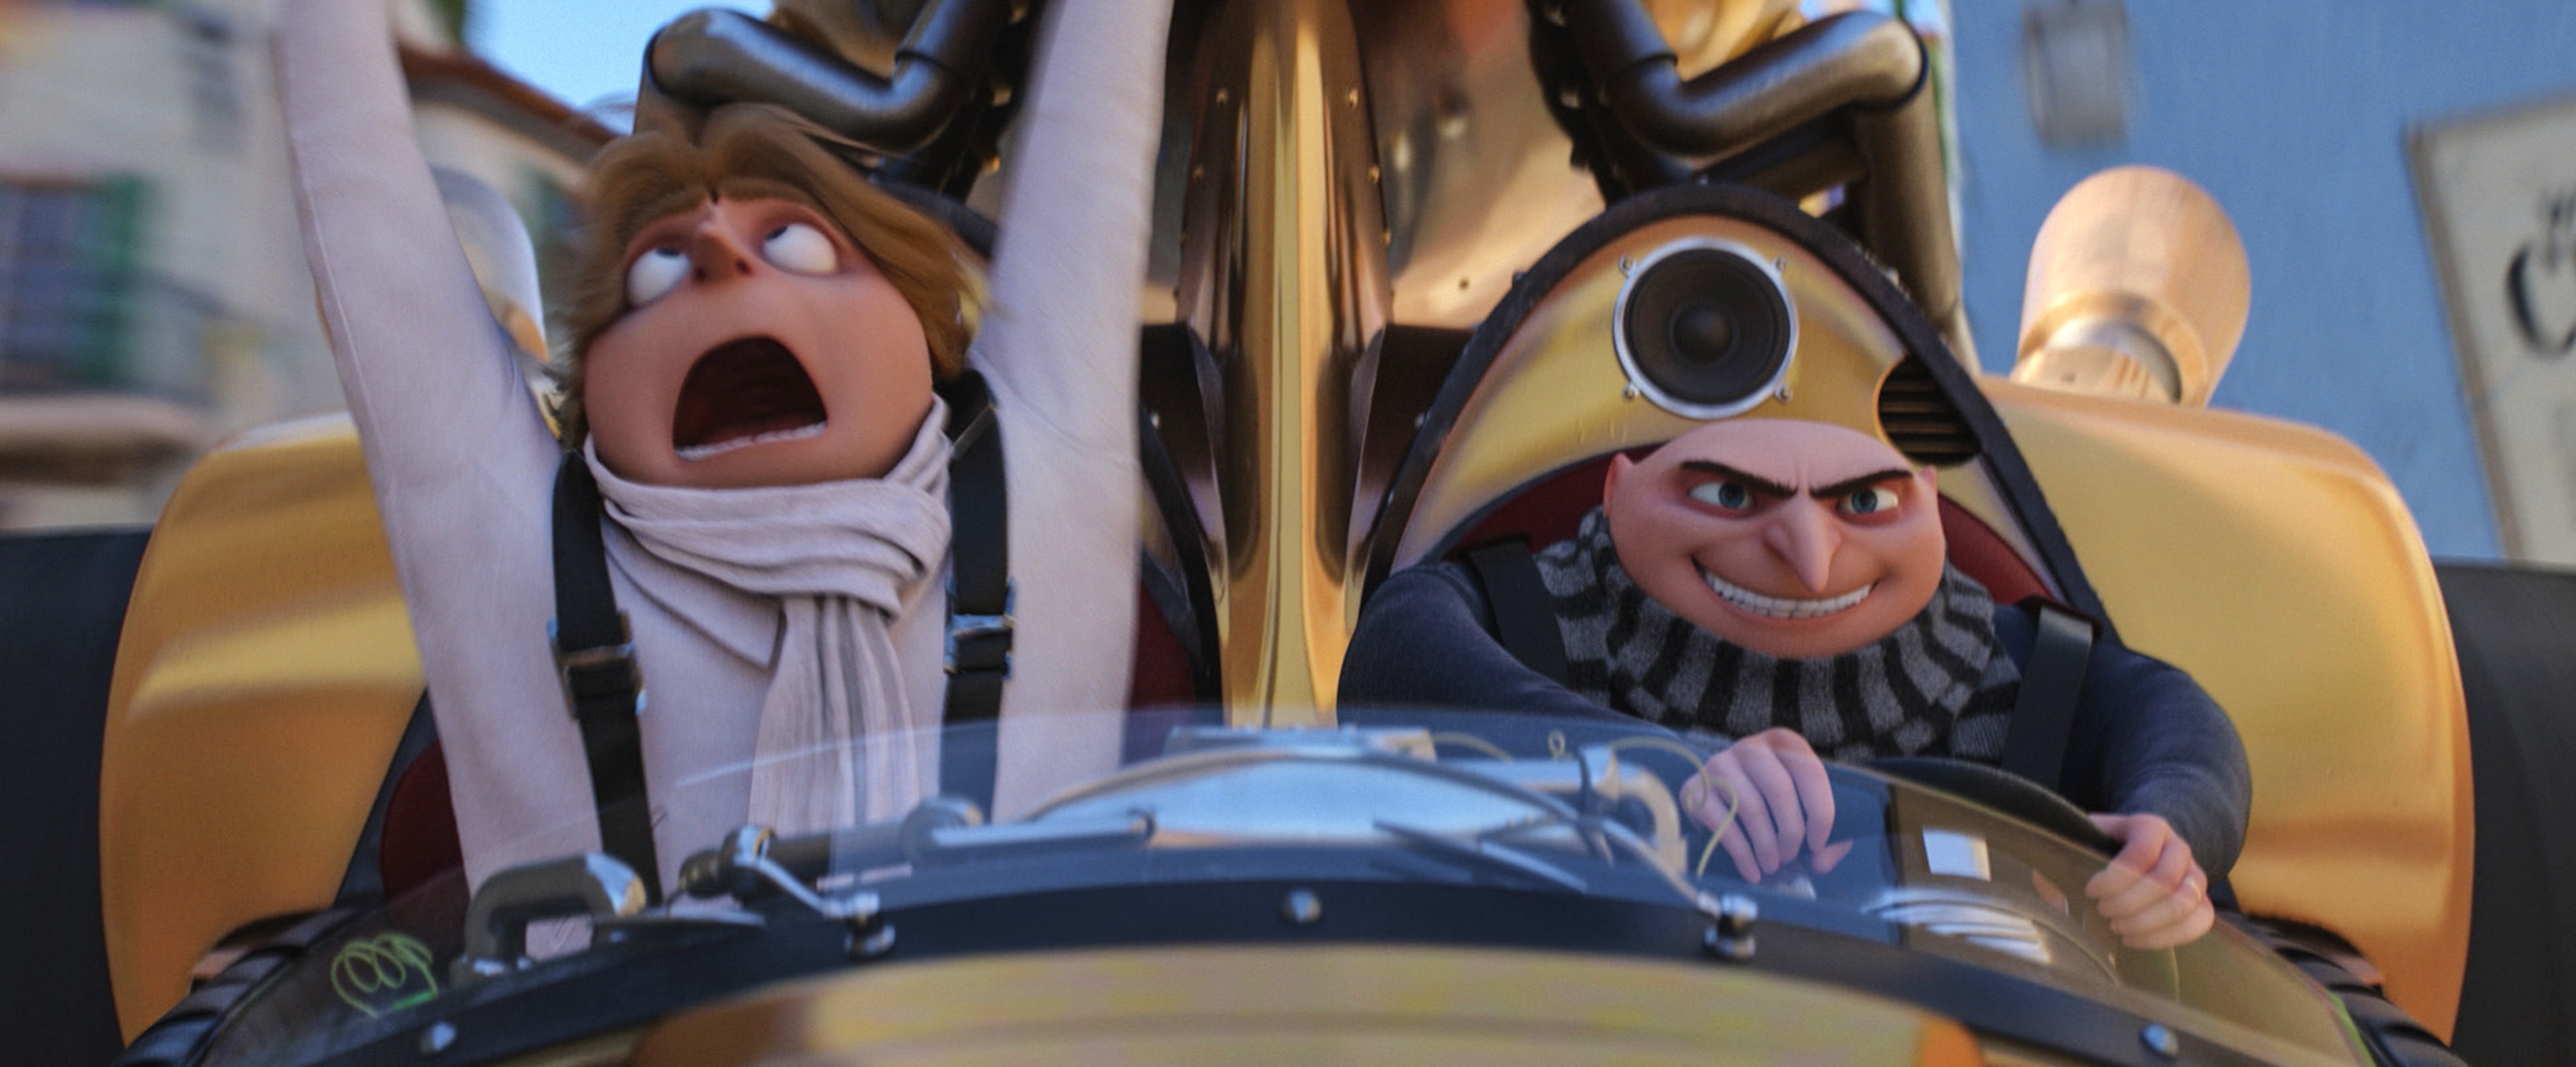 "(L to R) Dru (STEVE CARELL) and Gru (STEVE CARELL) in ""Despicable Me 3."" Illumination, who brought moviegoers ""Despicable Me"" and the biggest animated hits of 2013 and 2015, ""Despicable Me 2"" and ""Minions,"" continues the story of Gru, Lucy, their adorable daughters—Margo, Edith and Agnes—and the Minions as one former super-villain rediscovers just how good it feels to be bad."